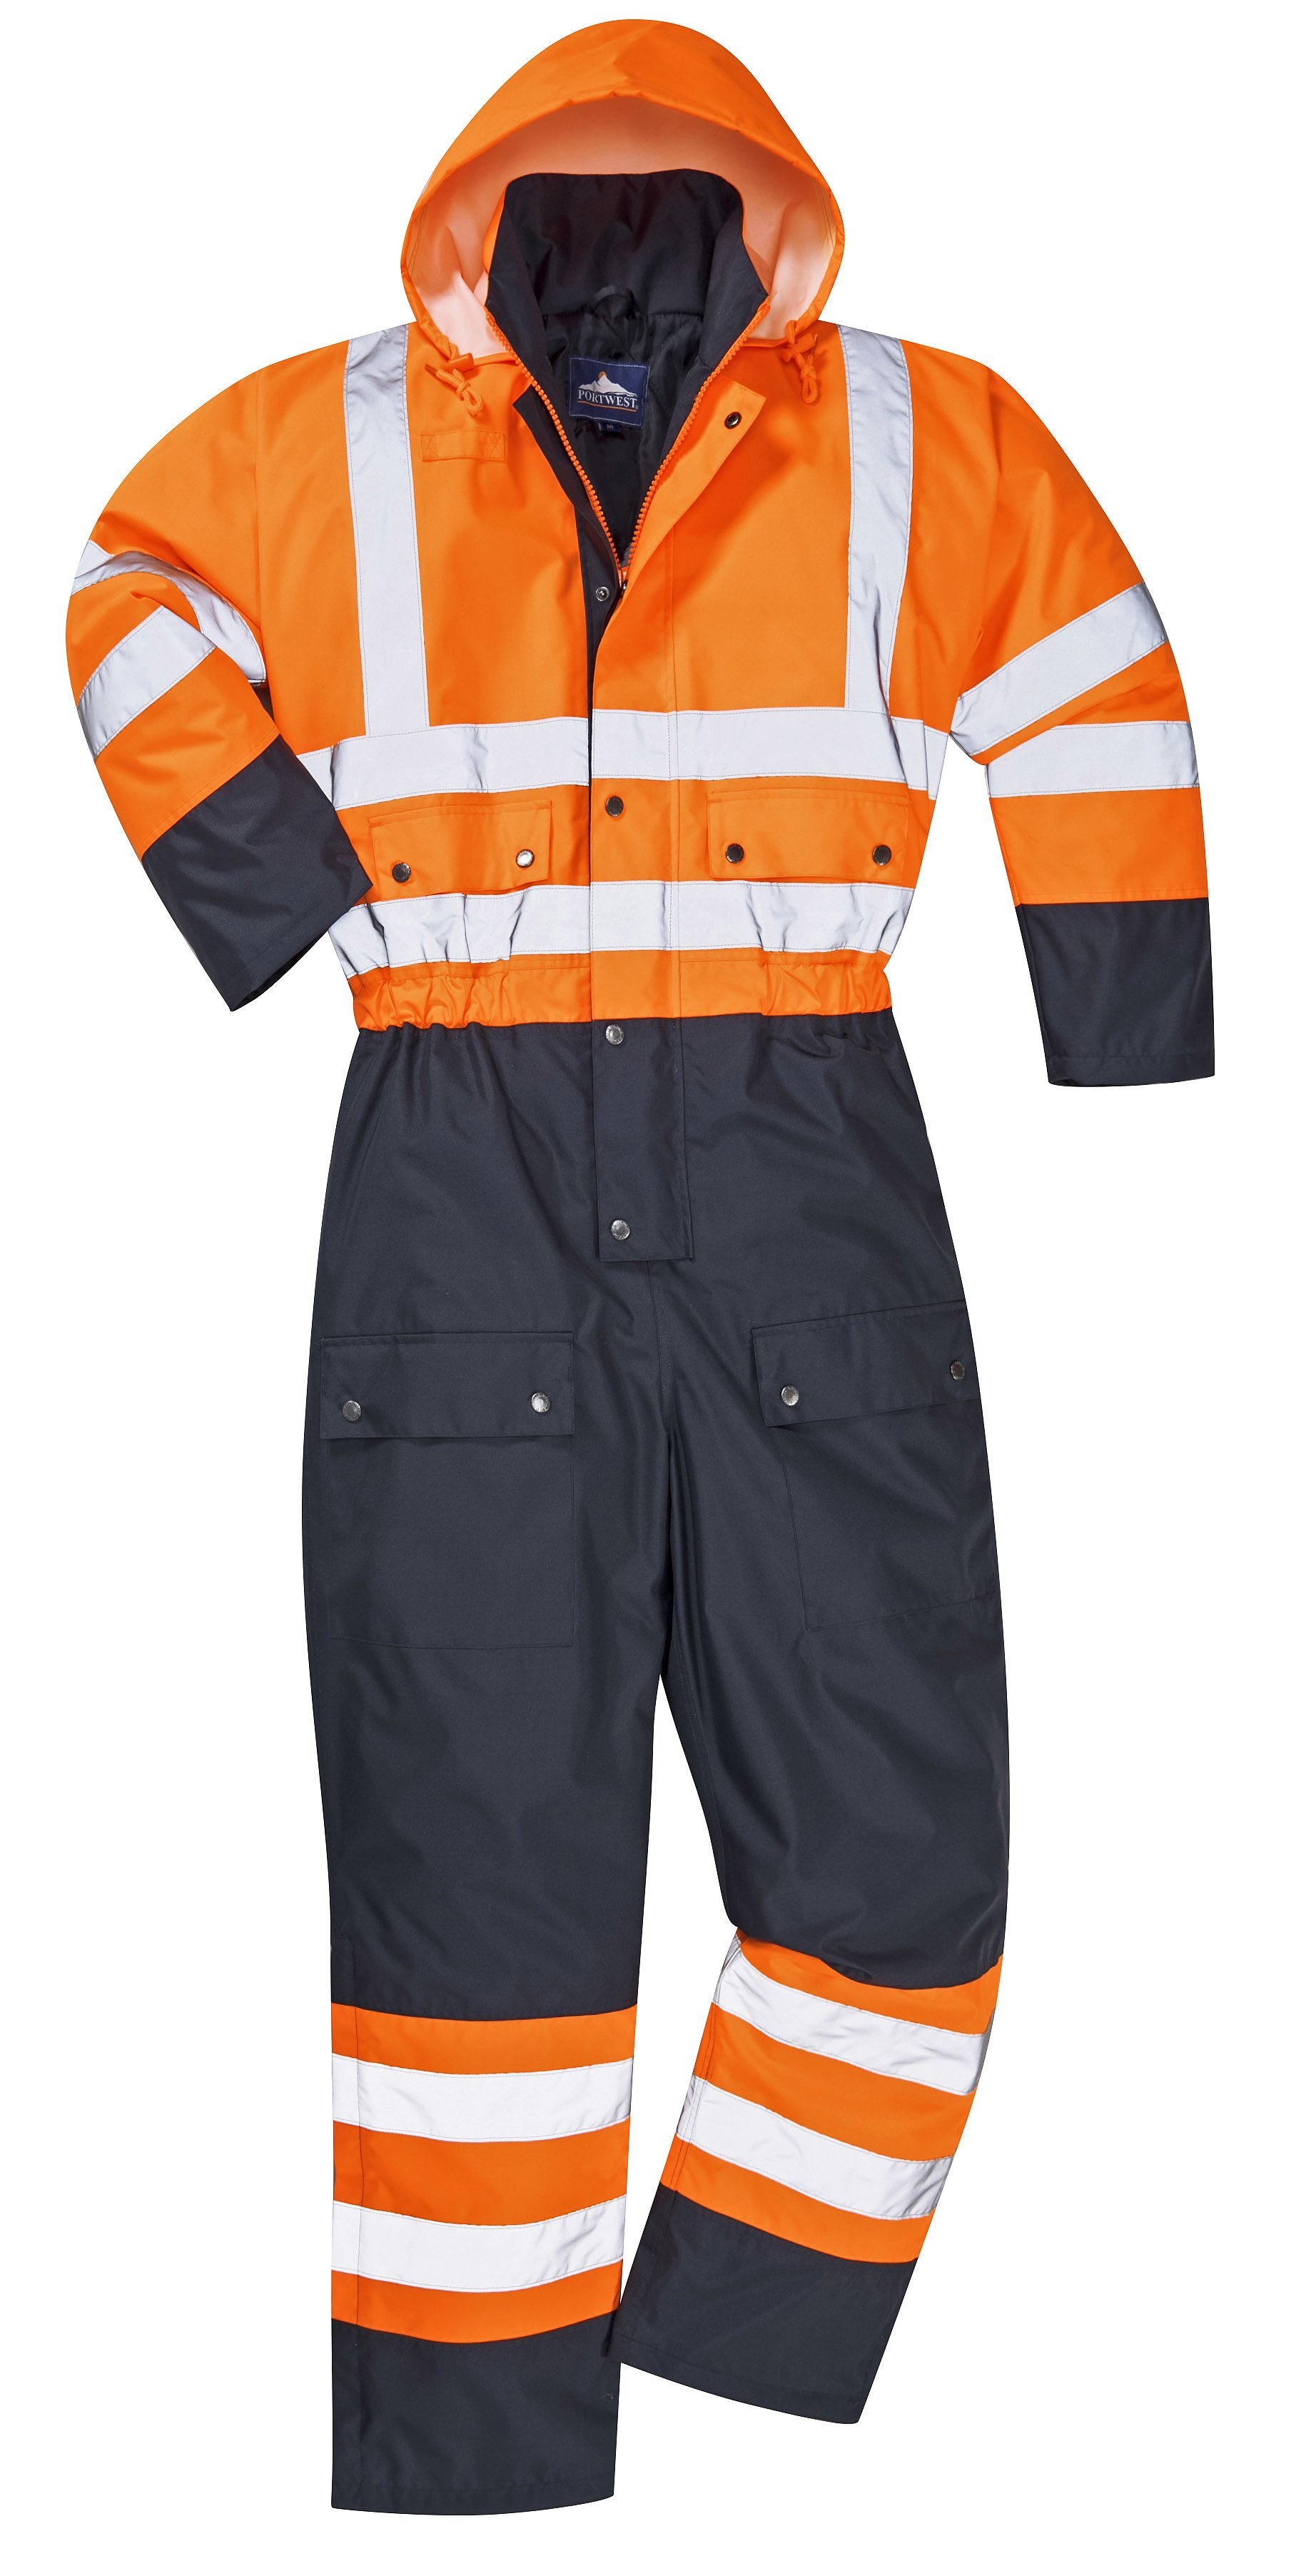 807159bd1815 Portwest S485 High Visibility Contrast Coverall Snow Suit